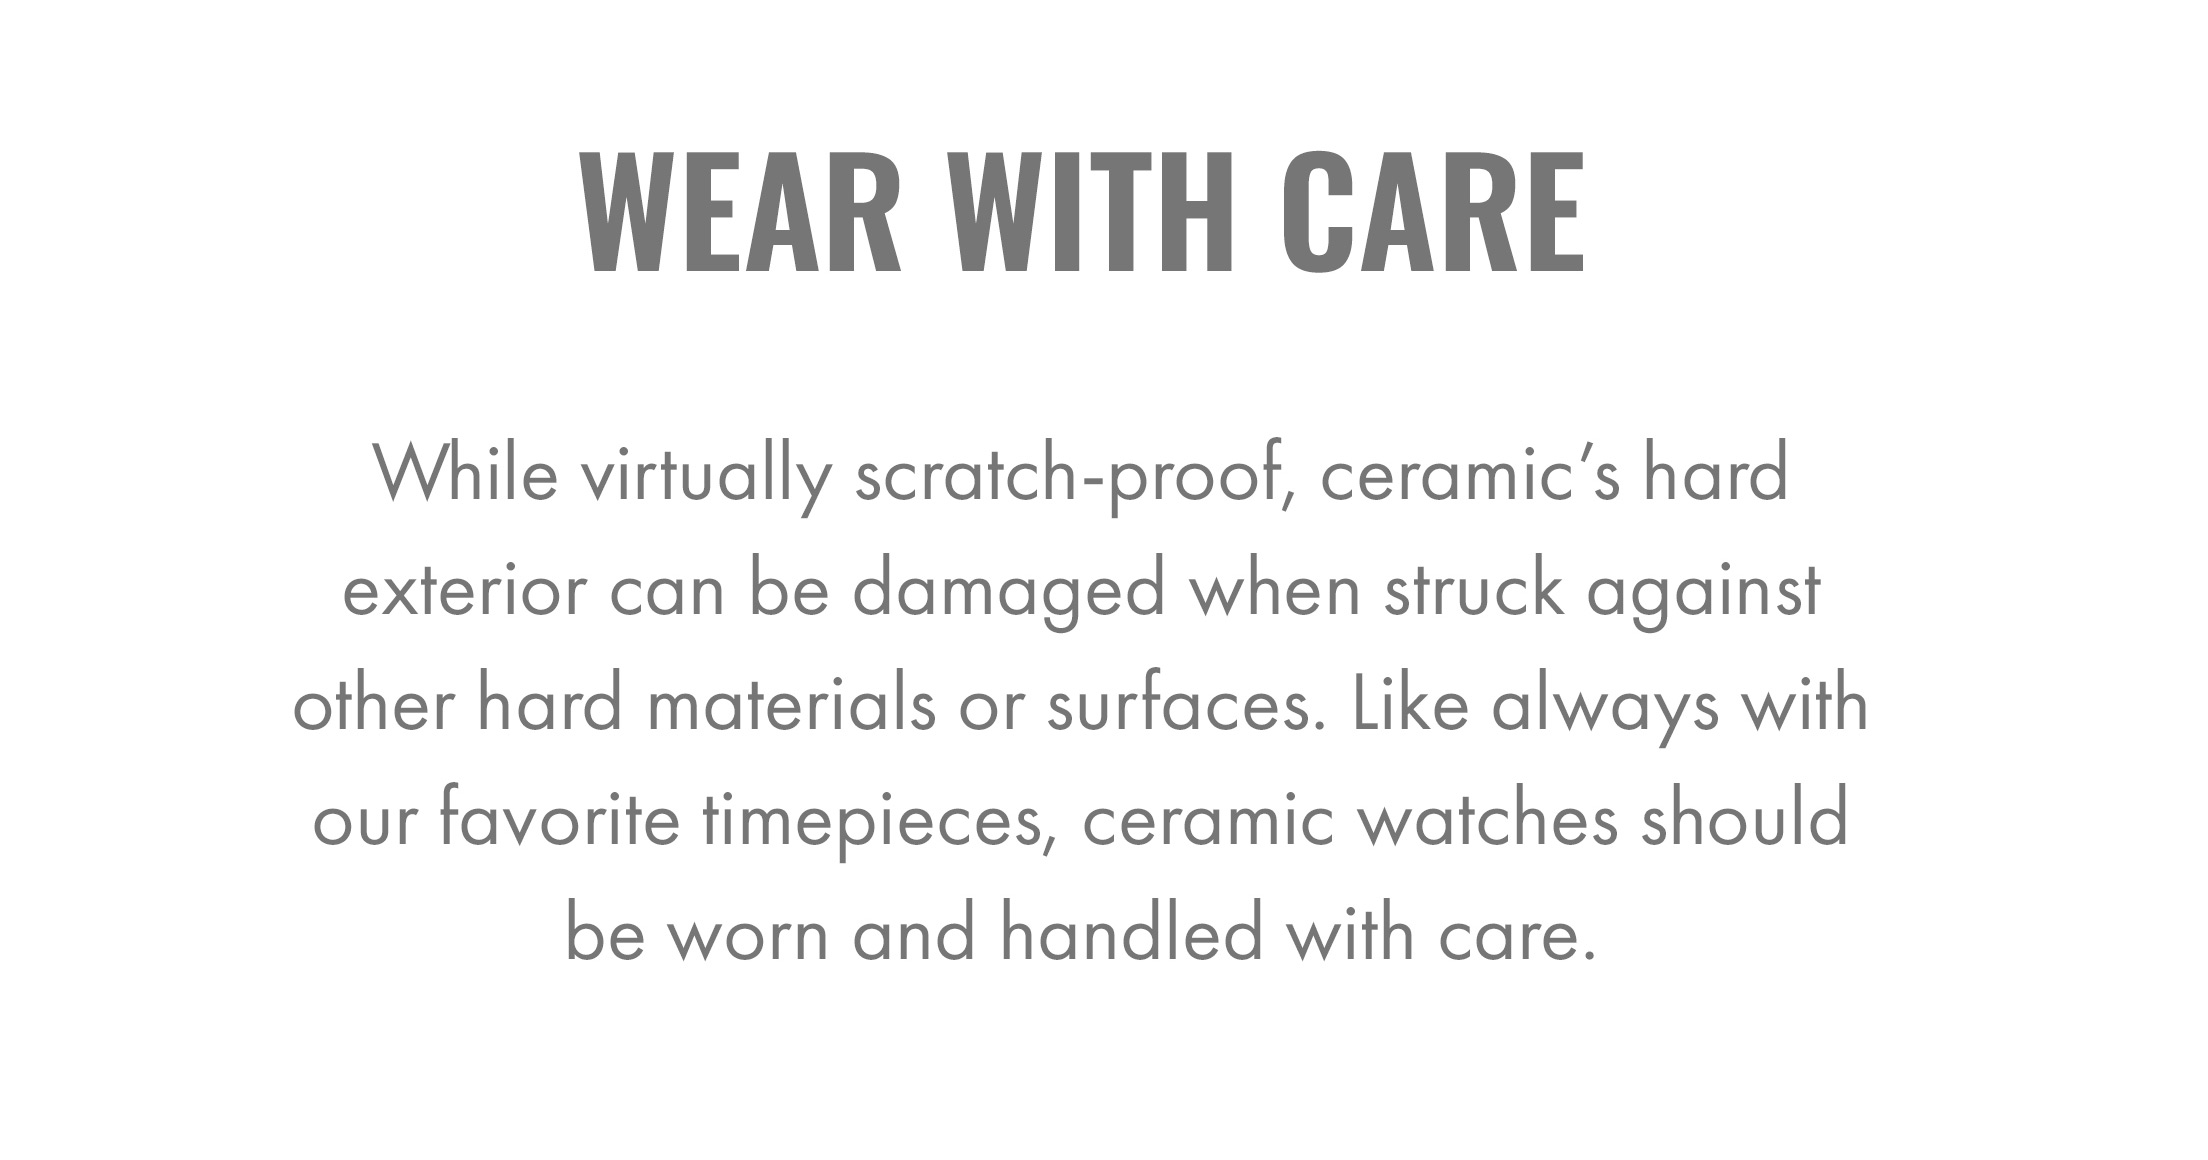 Wear with care